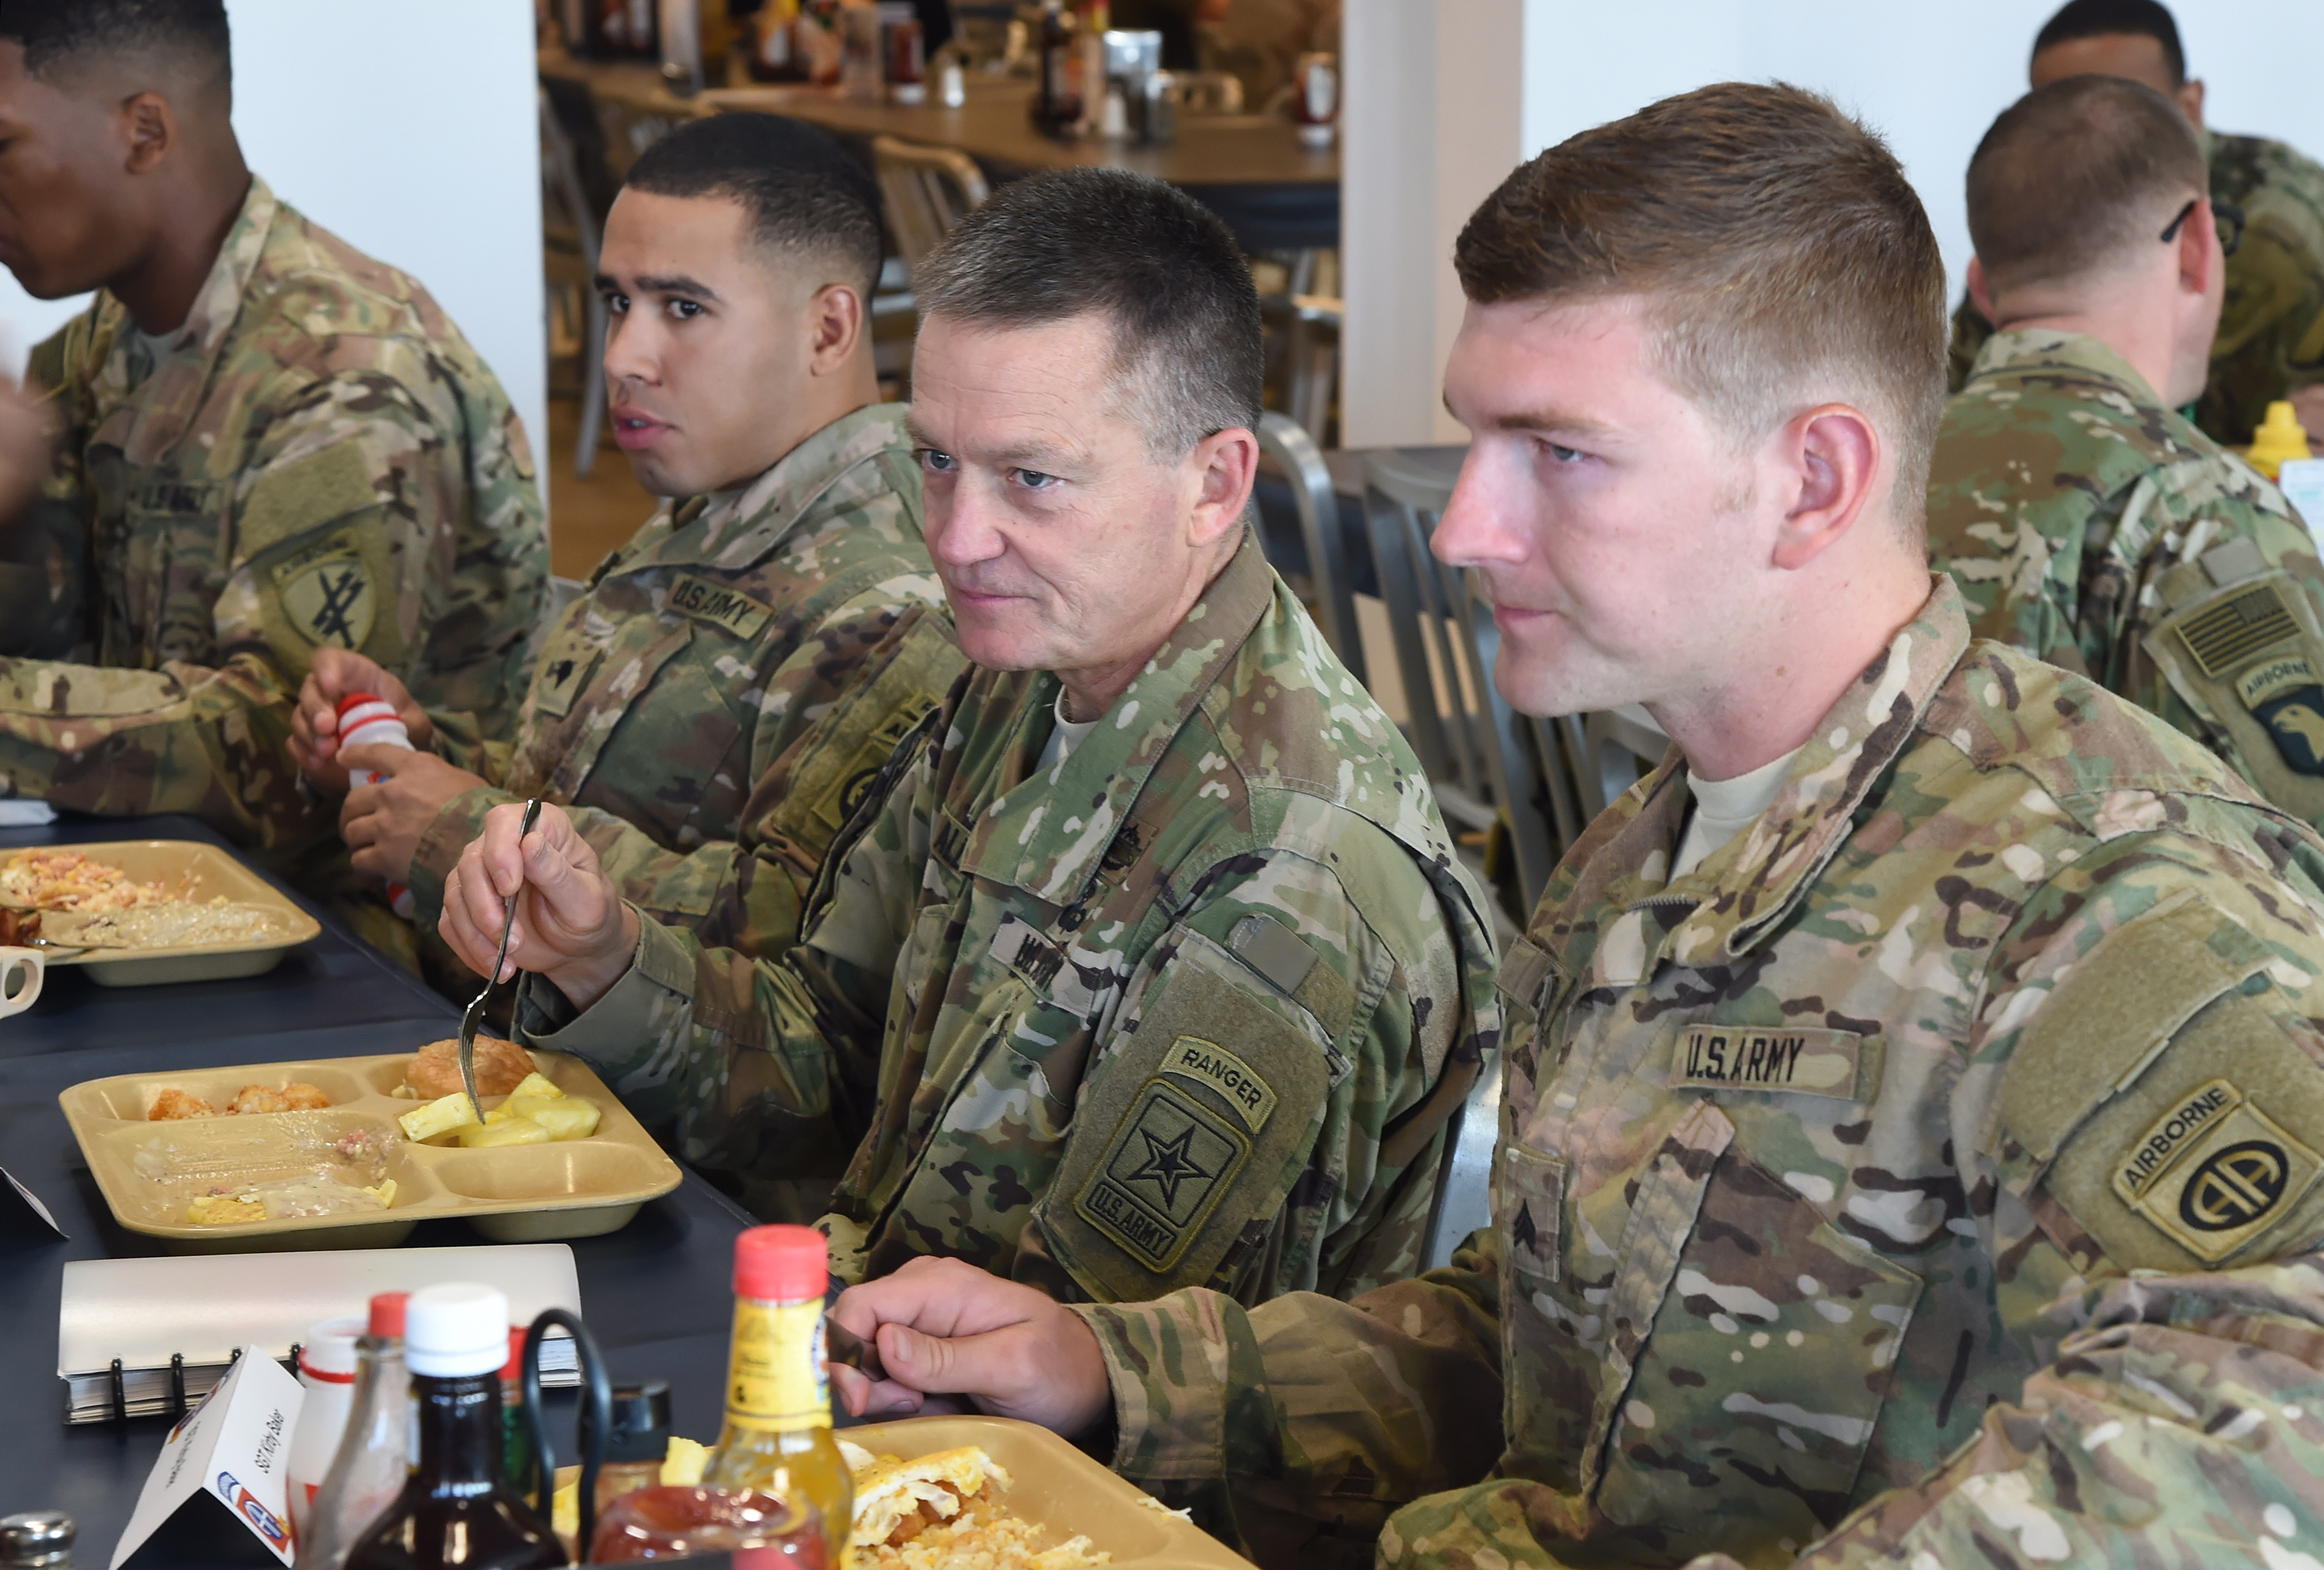 Vice Chief of Staff of the Army Gen. Daniel B. Allyn dines with deployed junior enlisted Soldiers at Camp Lemonnier, Djibouti, Jan. 16, 2017. Allyn's visit included the opportunity to meet with leadership to discuss on-going operations and challenges in the region, as well as recognize numerous service members for outstanding performance in support of Camp Lemonnier, and Combined Joint Task Force-Horn of Africa. (U.S. Air National Guard photo by Master Sgt. Paul Gorman)